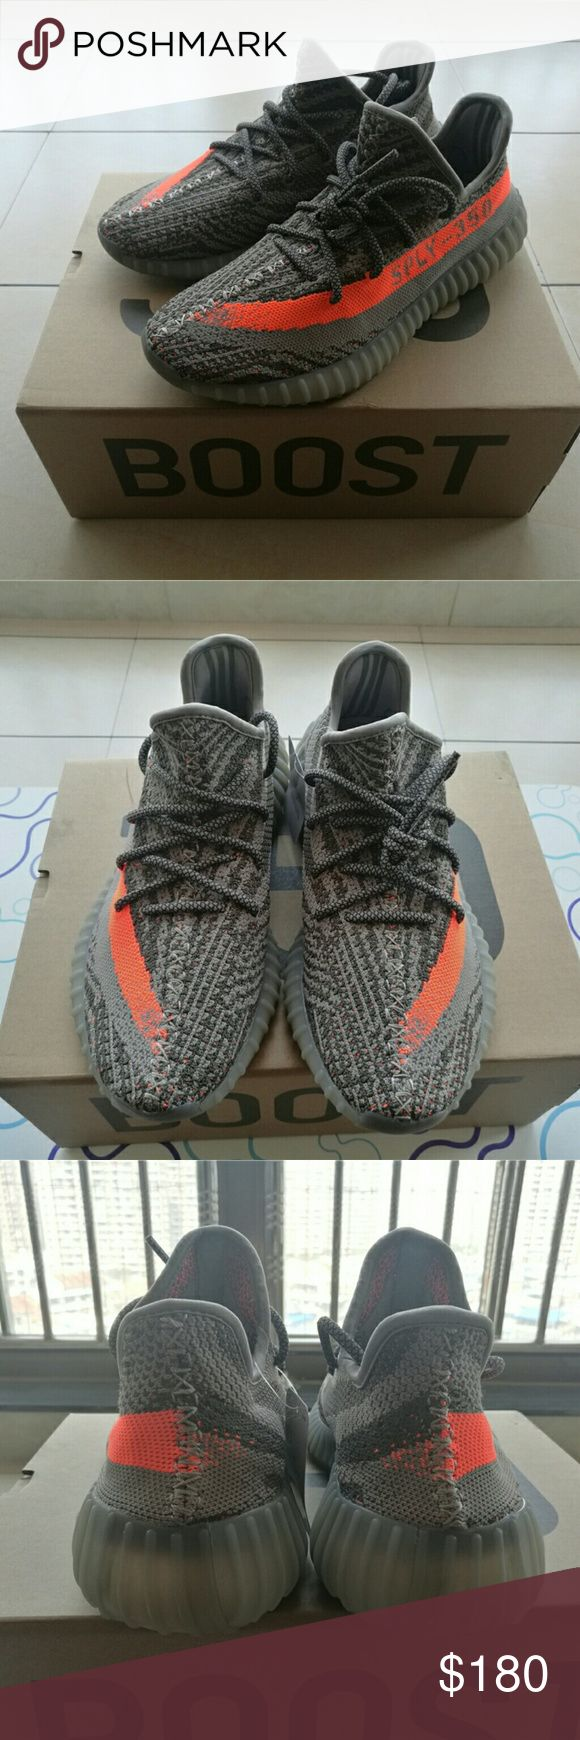 Adidas Yeezy 350 V2 Beluga With REAL BOOST Size US 4-13 available.Yeezy Shoes are authentic best retail  version shoes with real boost and original box and  receipts,Everything of them are the same as originals in adidas  store and have highest performance cost.all are real shots, what  you see is what you get. We have many customers are satisfied with  the quality very much. Please contact us to get $30 off before  place the order, TEXT me or WhatsAPP: +86 18159395195  Kik…